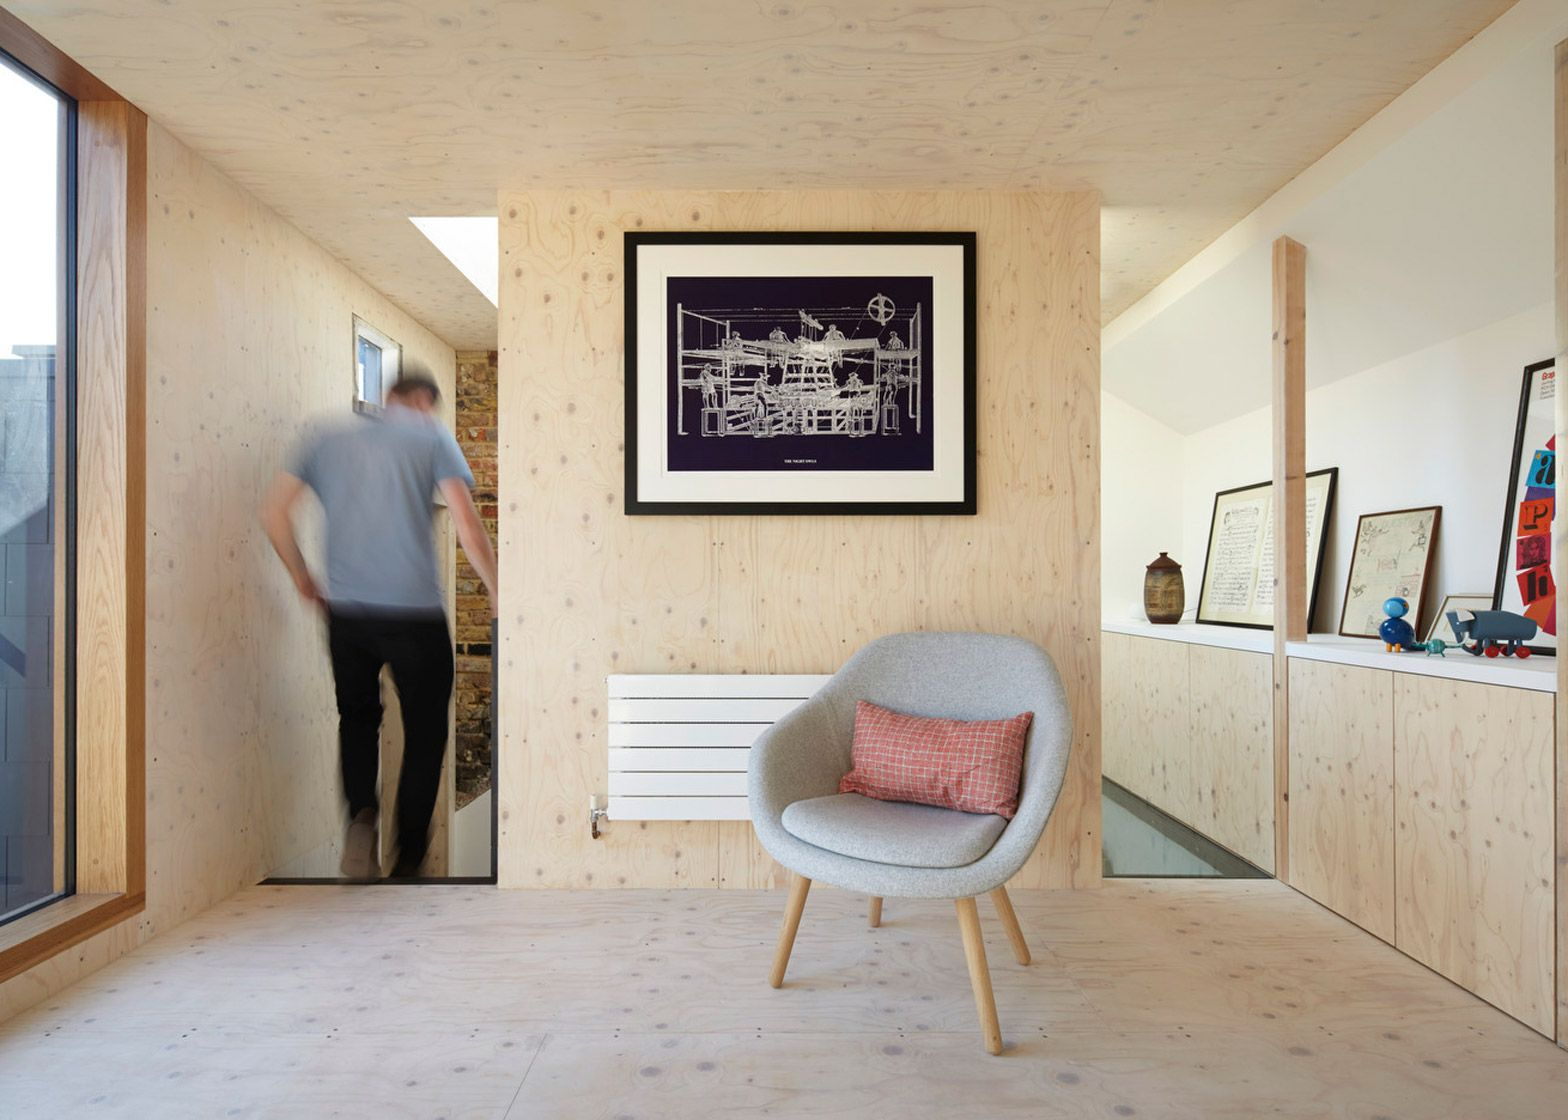 1000+ images about Plywood interiors on Pinterest - ^